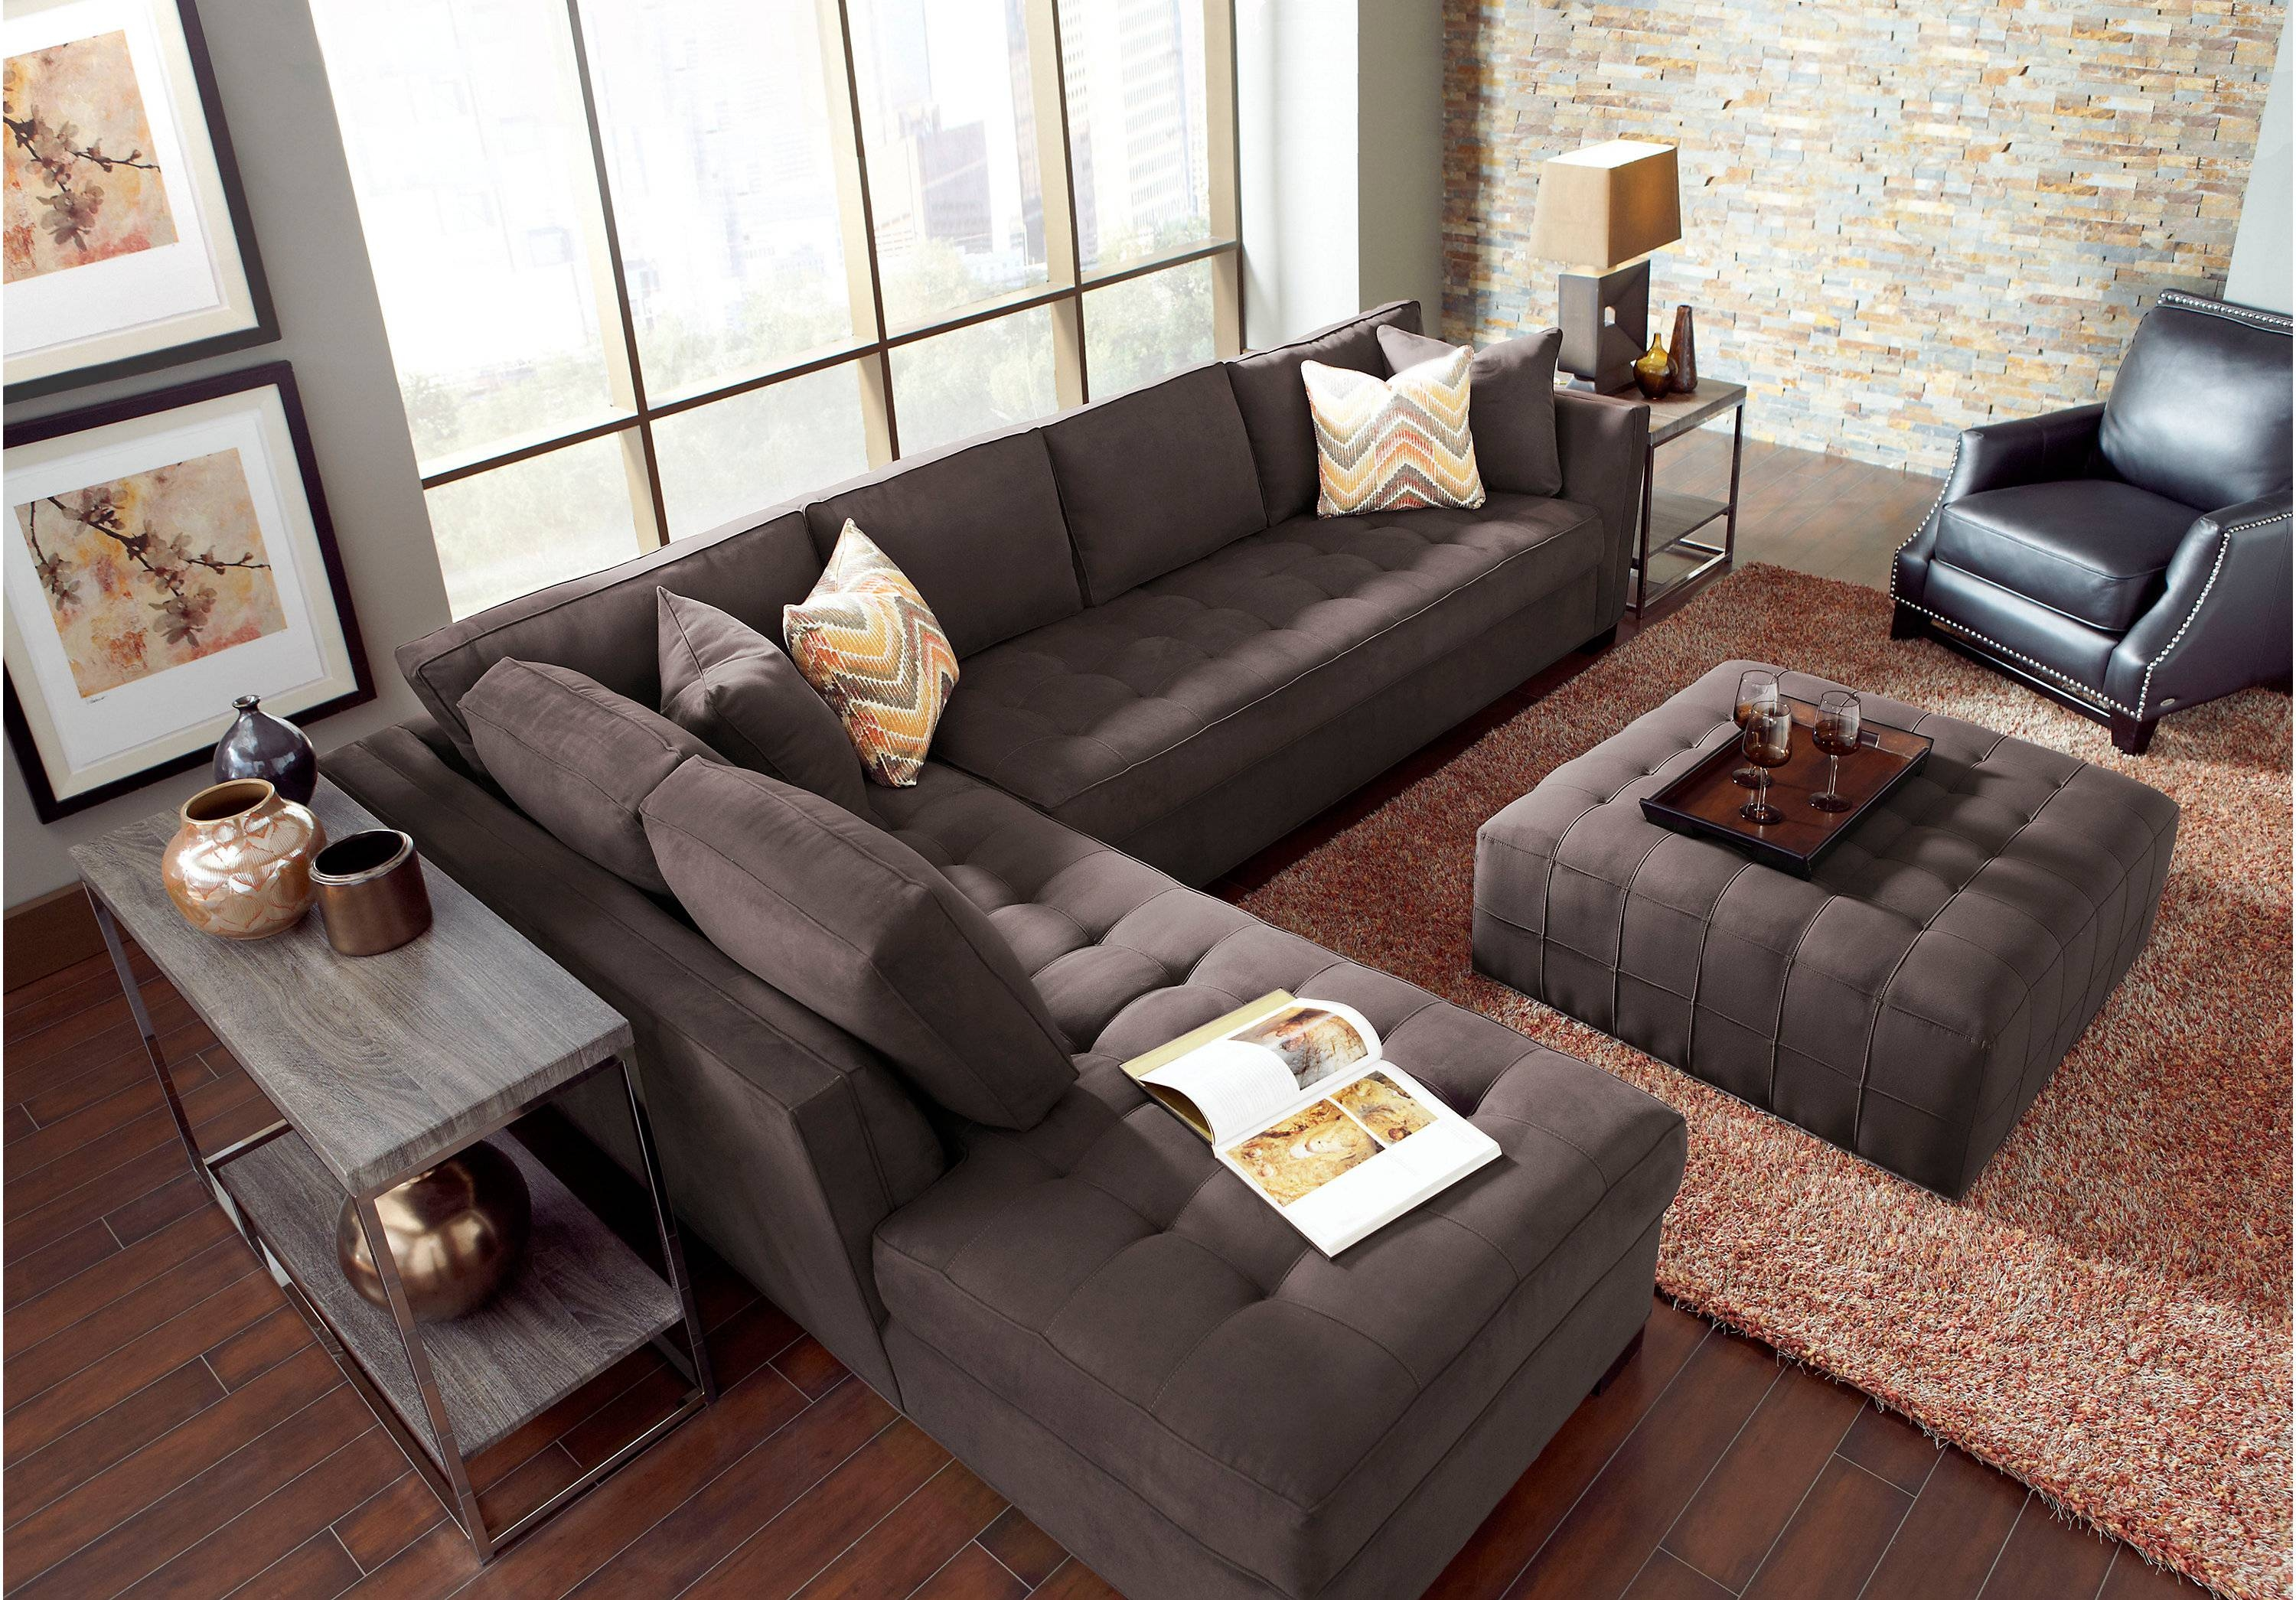 Furniture: Cindy Crawford Sectional Sofas | Cindy Crawford Leather with regard to Cindy Crawford Sectional Couches (Image 7 of 15)